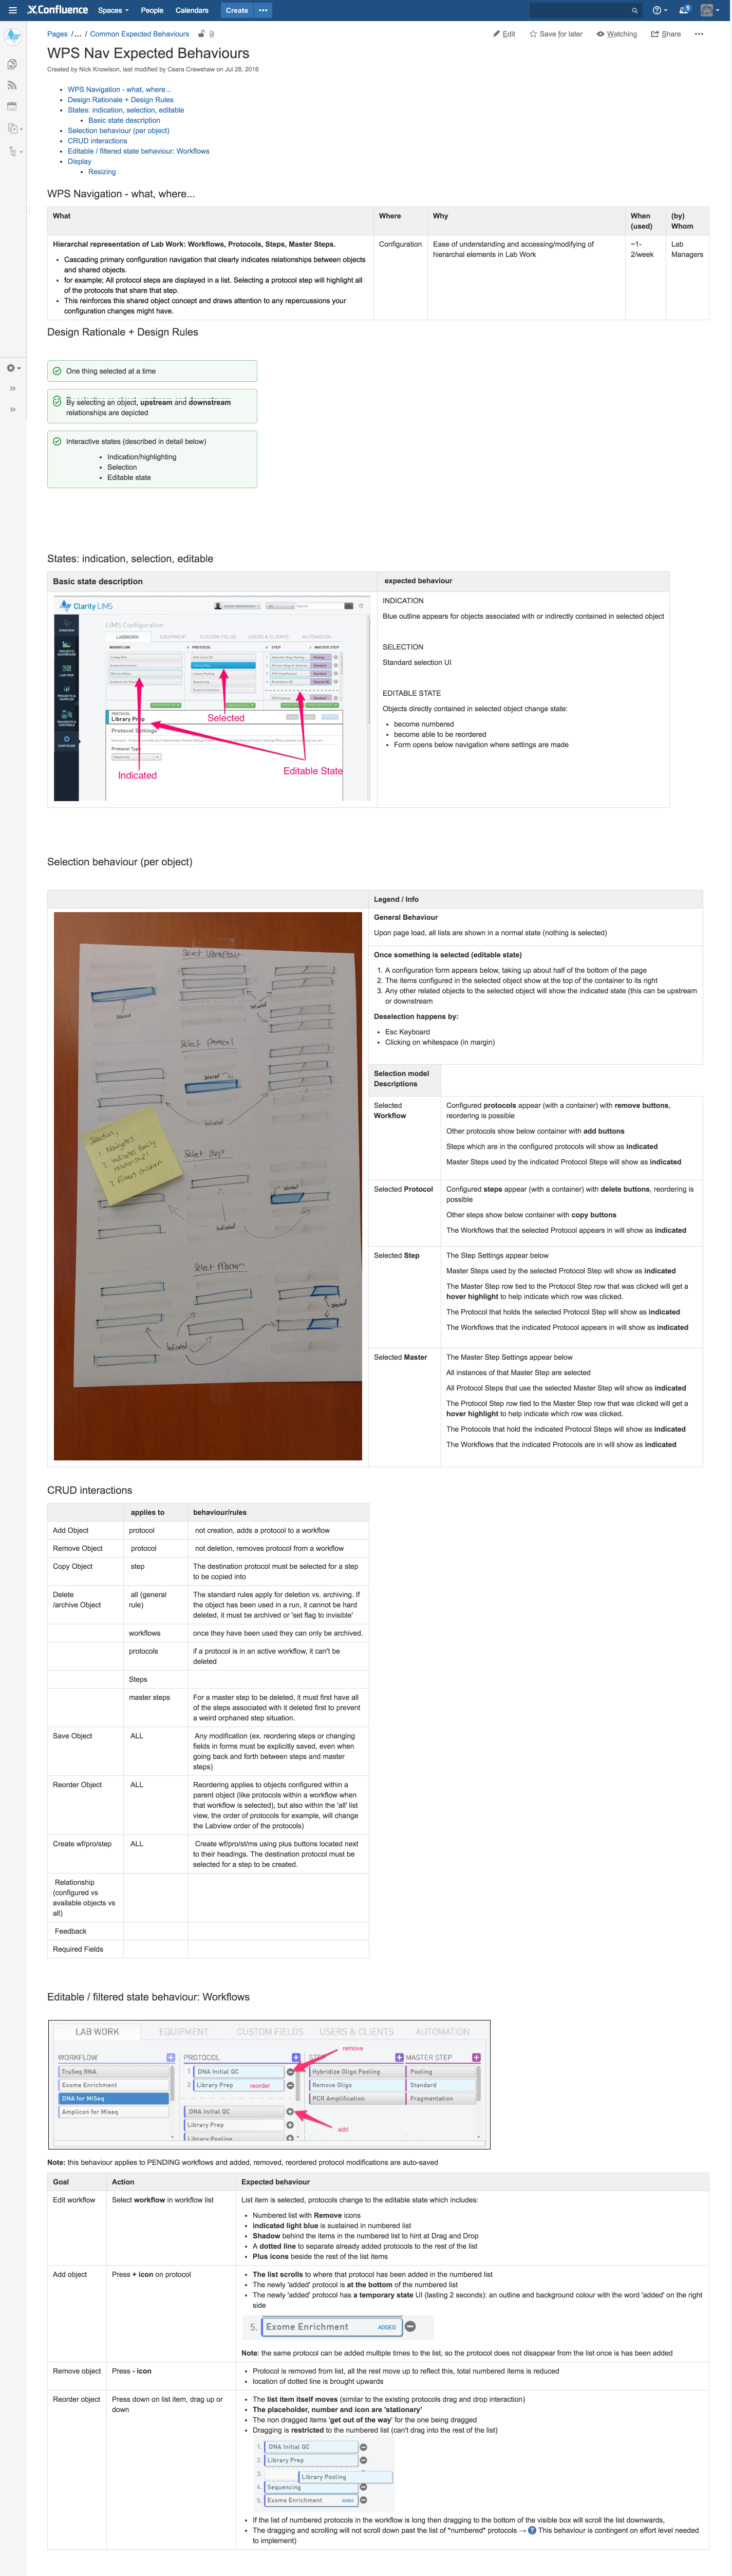 Design Documentation:  I produced this document initially and then developers contributed to it once implementation began. To view this document more easily, please  go here .